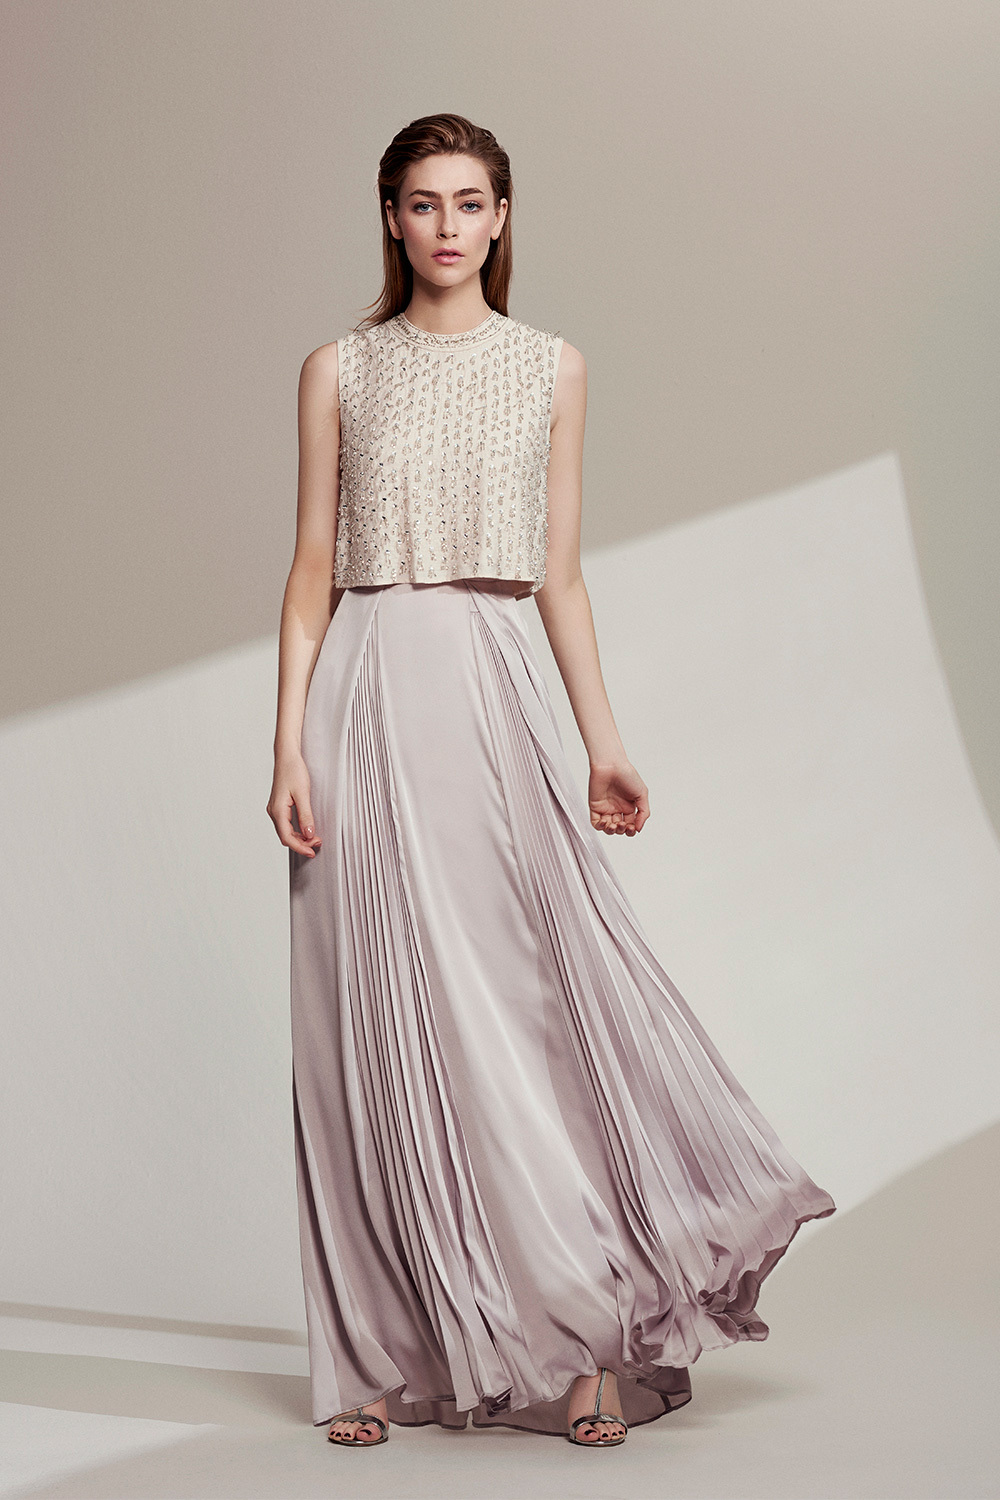 Macy Skirt Sl - pattern: plain; length: ankle length; fit: loose/voluminous; waist: high rise; predominant colour: blush; occasions: evening, occasion; style: maxi skirt; fibres: silk - 100%; hip detail: soft pleats at hip/draping at hip/flared at hip; texture group: silky - light; pattern type: fabric; season: s/s 2016